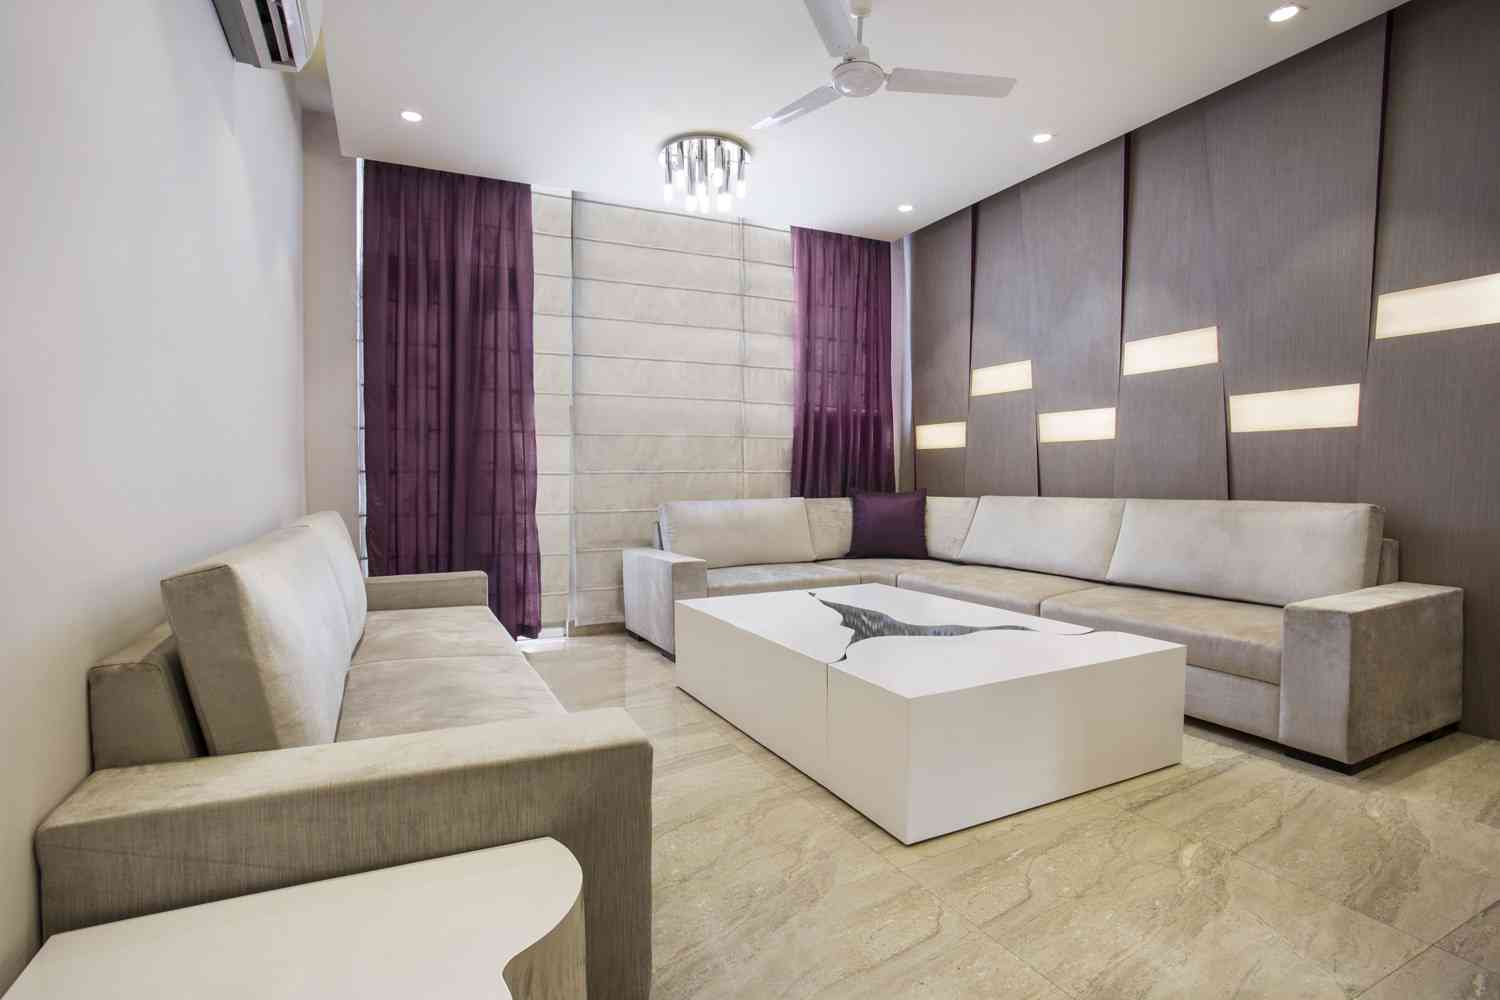 residential projects of total interiors solutions pvt ltd